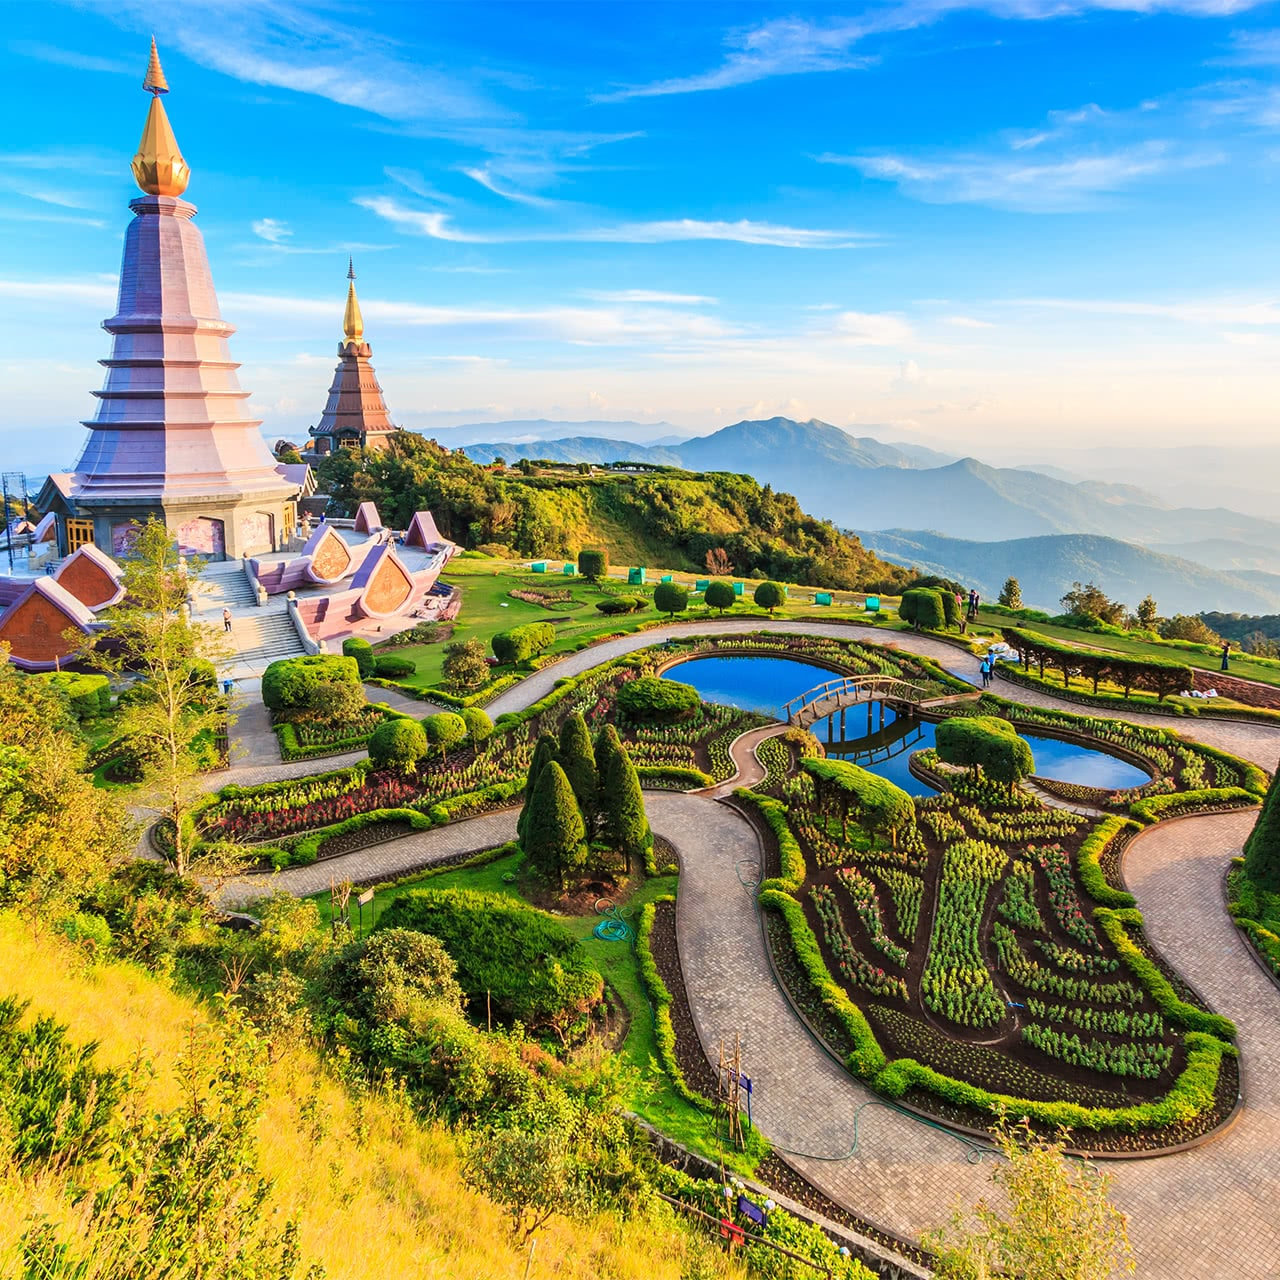 a view from Chiang Mai, Thailand